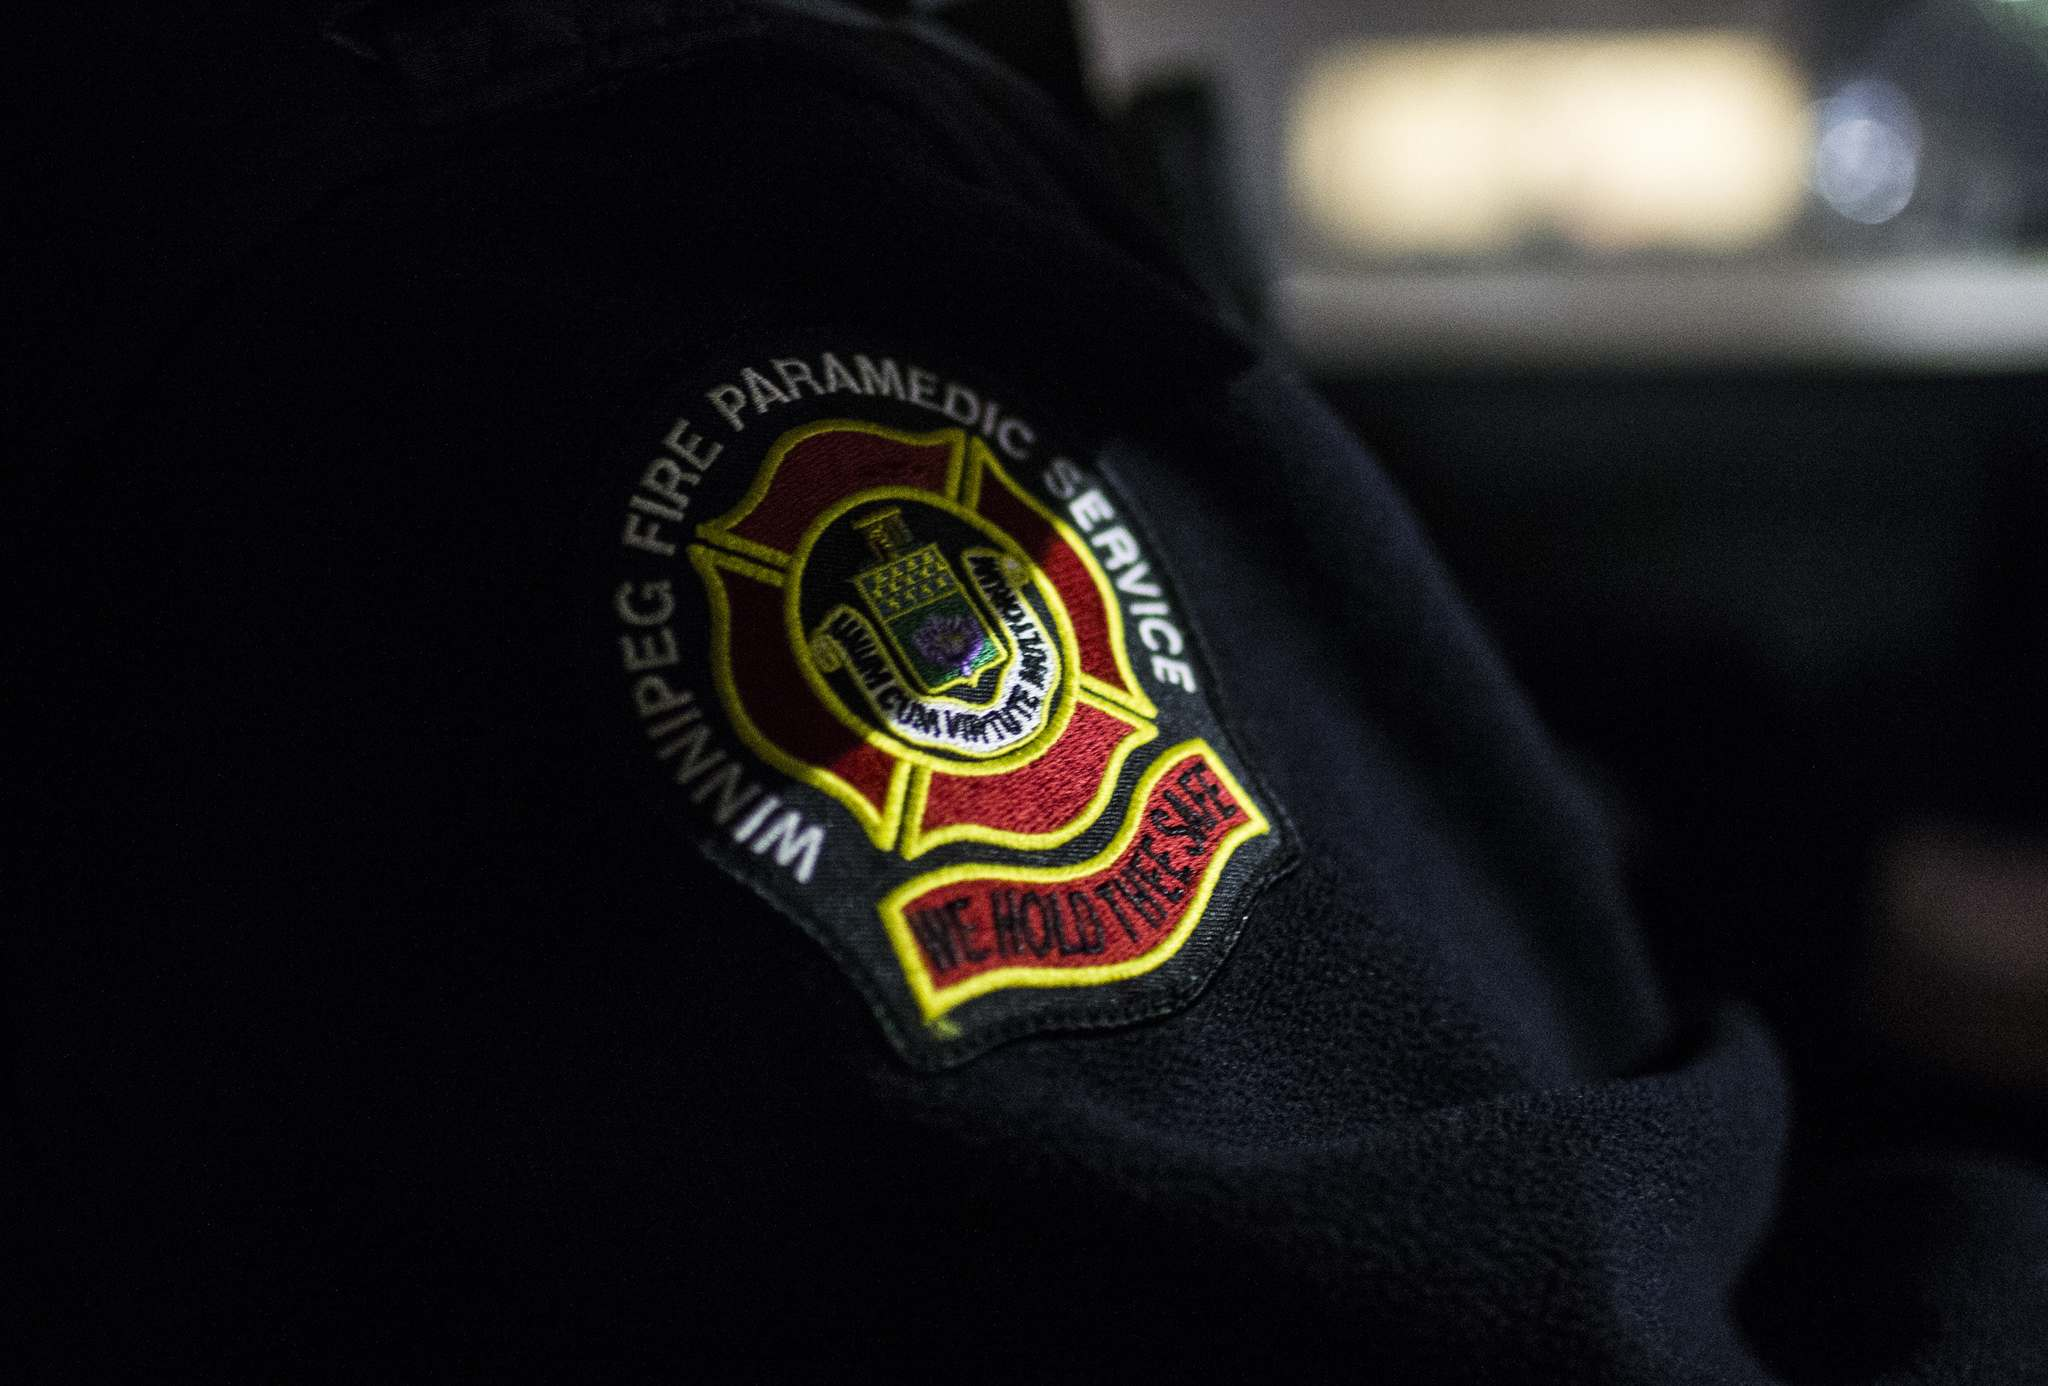 A third-party investigation found 'implicit racial bias' against the patient and 'racial animus' against the paramedic (a person of colour) likely impacted the actions of firefighters that night. (Mikaela MacKenzie / Winnipeg Free Press files)